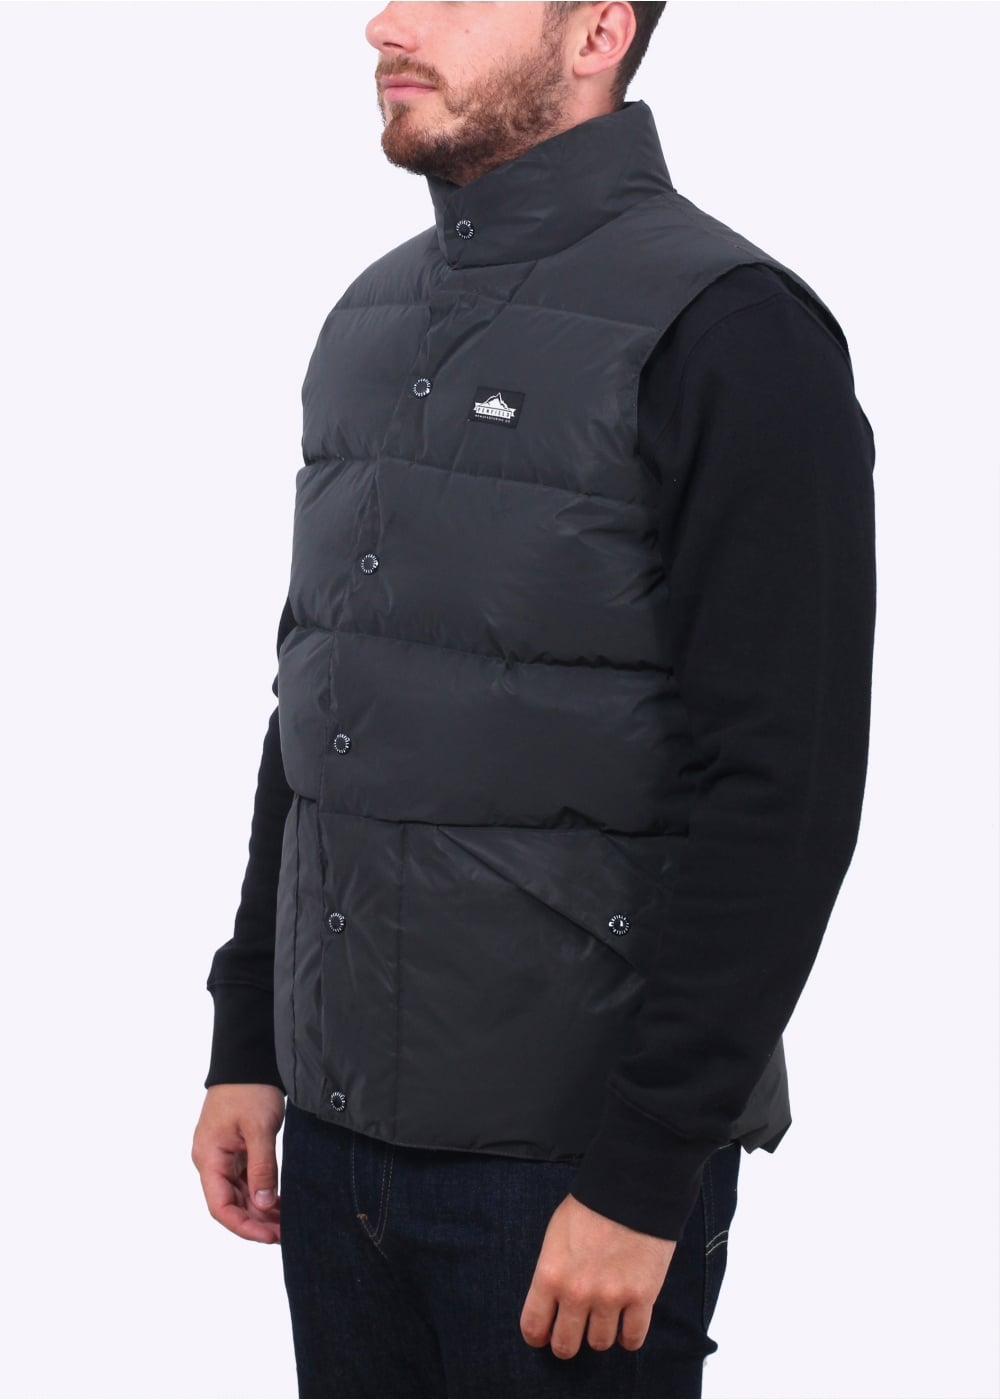 Outback Reflective Vest - Black - Gilets from Triads UK c889296564a